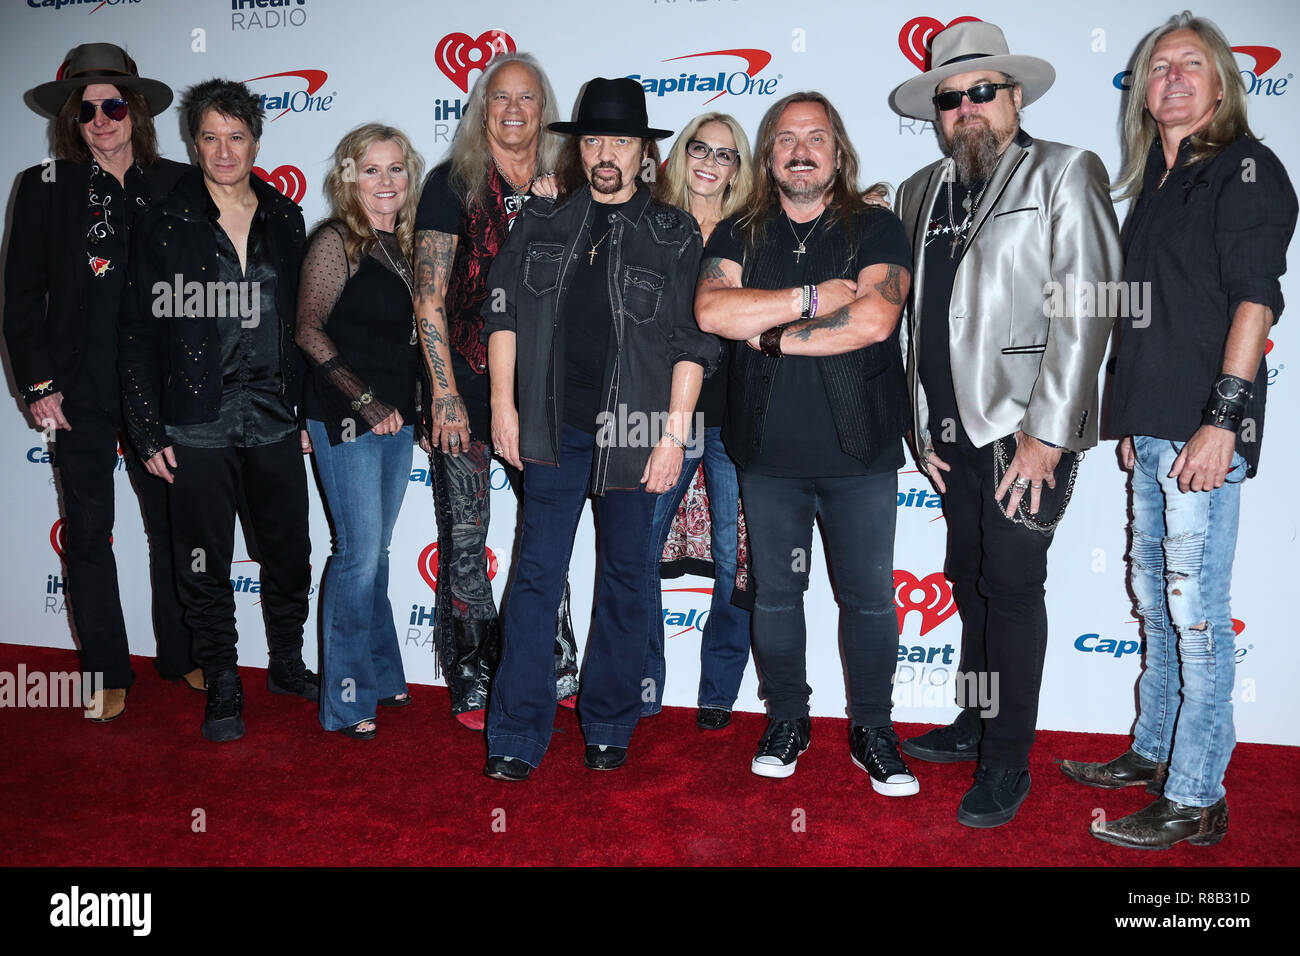 LAS VEGAS, NV, USA - SEPTEMBER 22: Mark Matejka, Rickey Medlocke, Gary Rossington, Keith Christopher, Lynyrd Skynyrd in the press room during the 2018 iHeartRadio Music Festival - Night 2 held at T-Mobile Arena on September 22, 2018 in Las Vegas, Nevada, United States. (Photo by Xavier Collin/Image Press Agency) Stock Photo